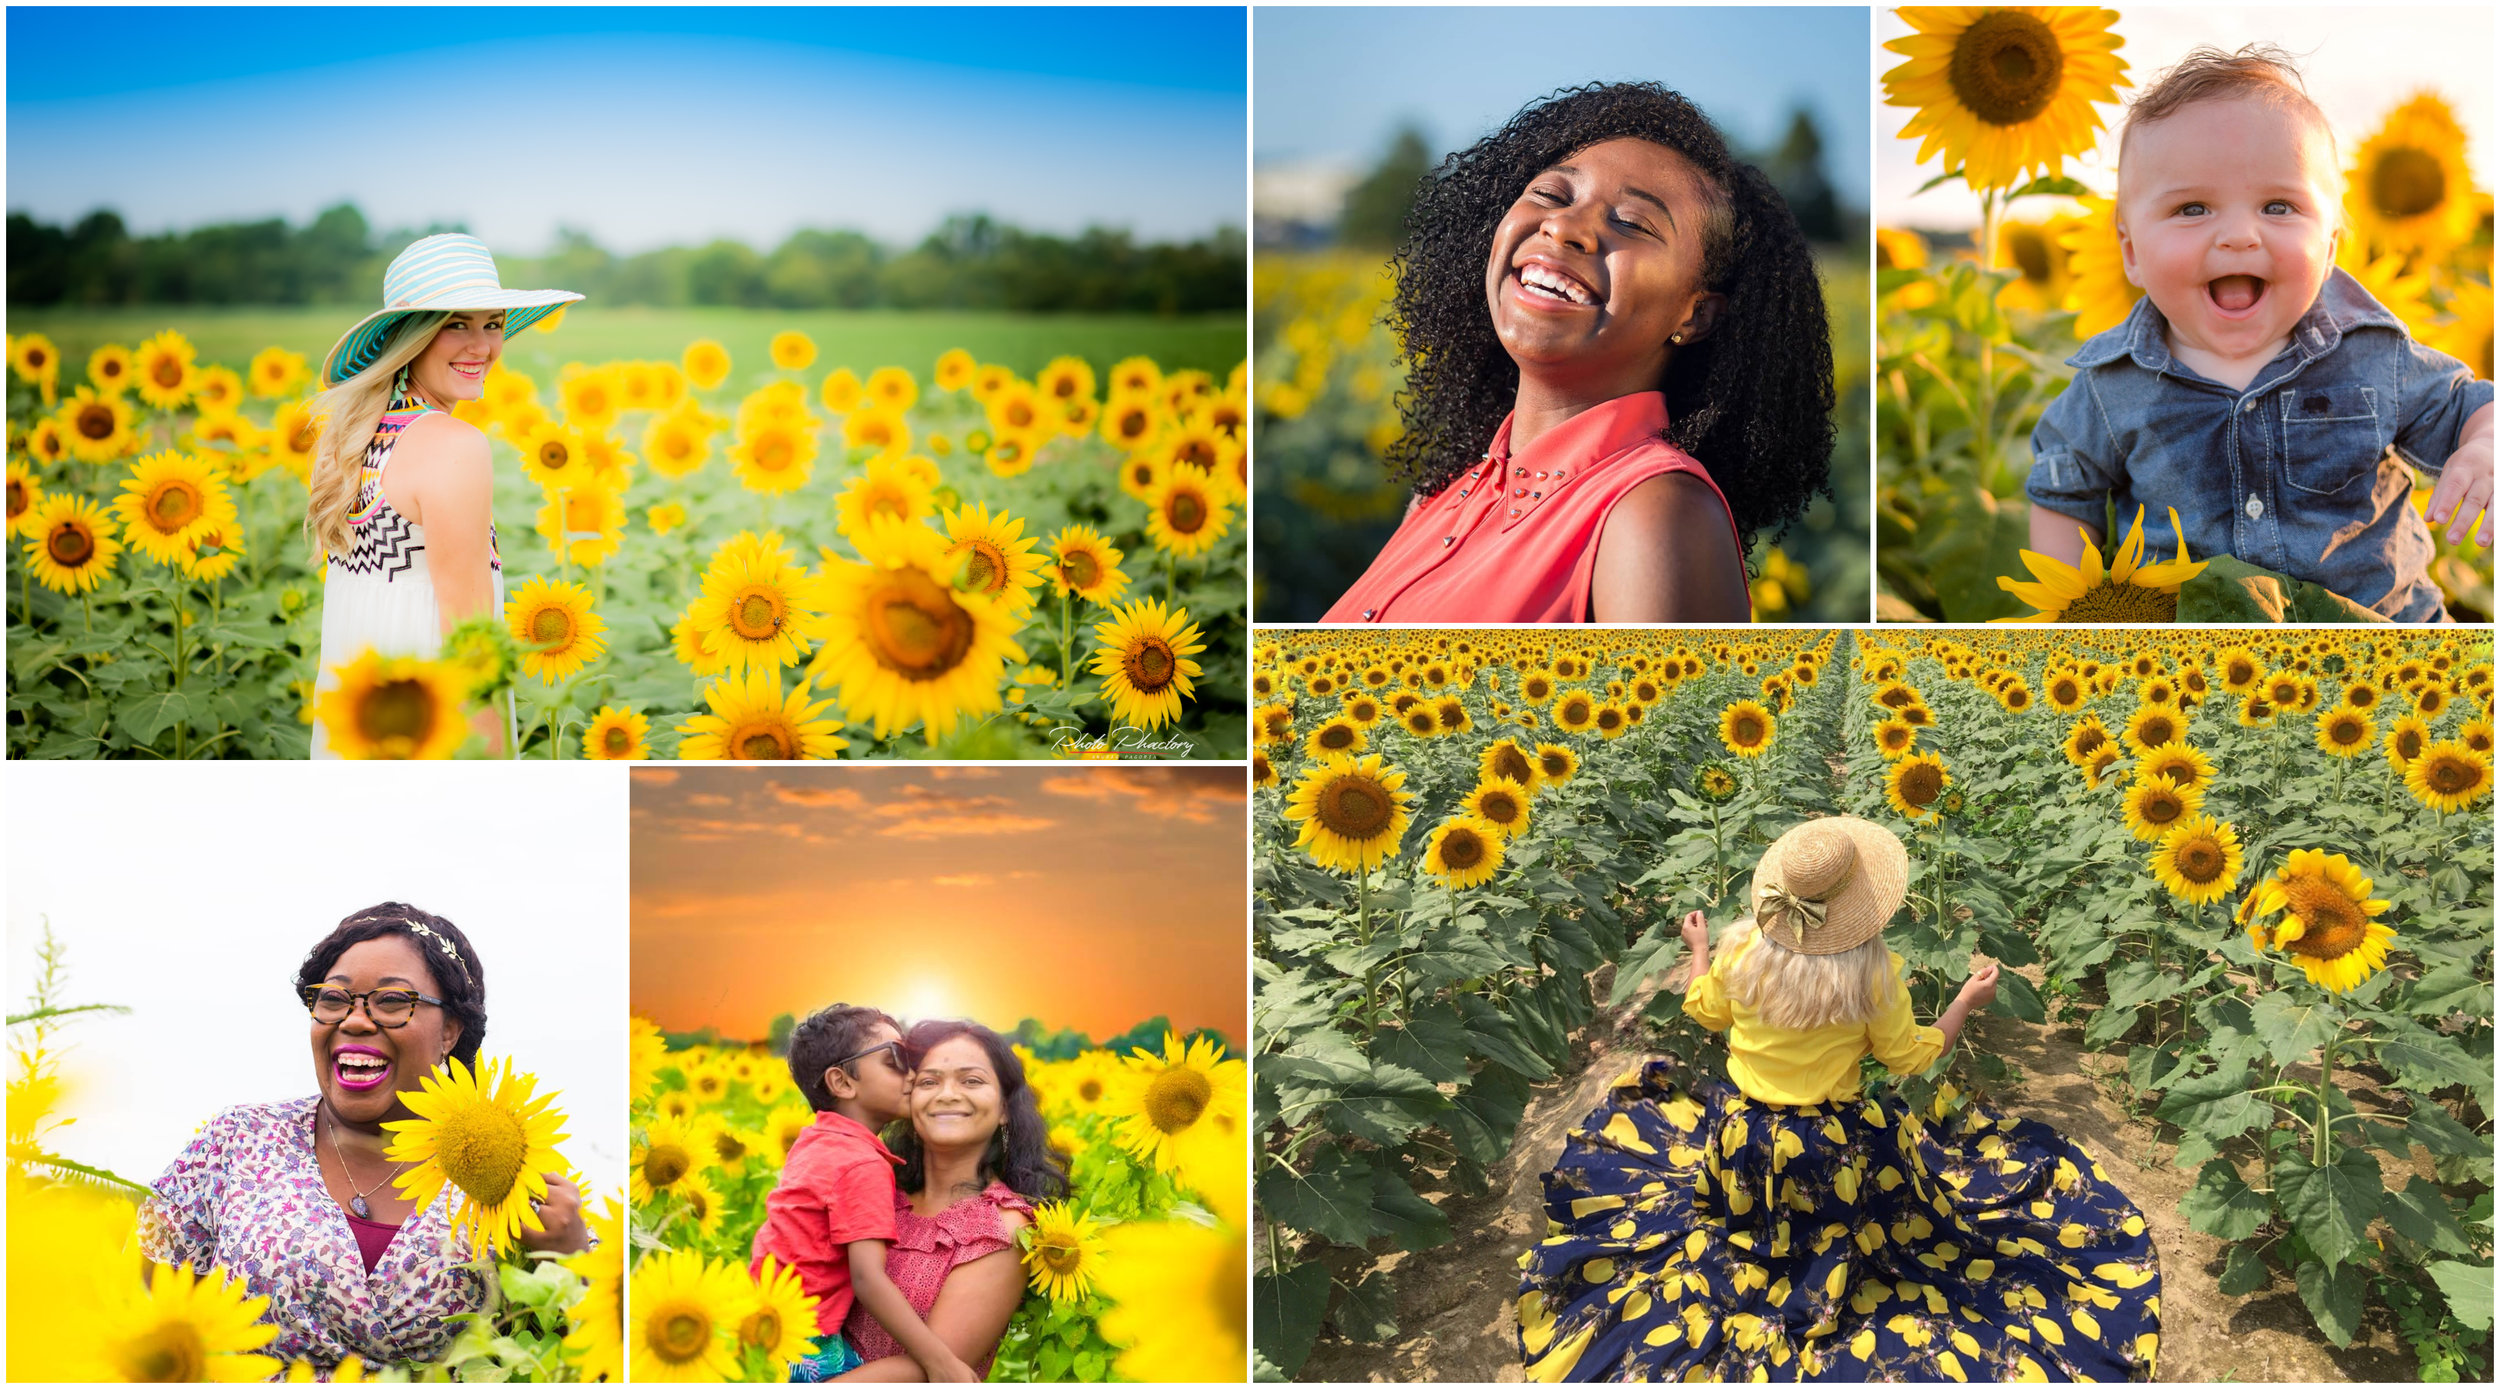 sunflowers 2018.jpg